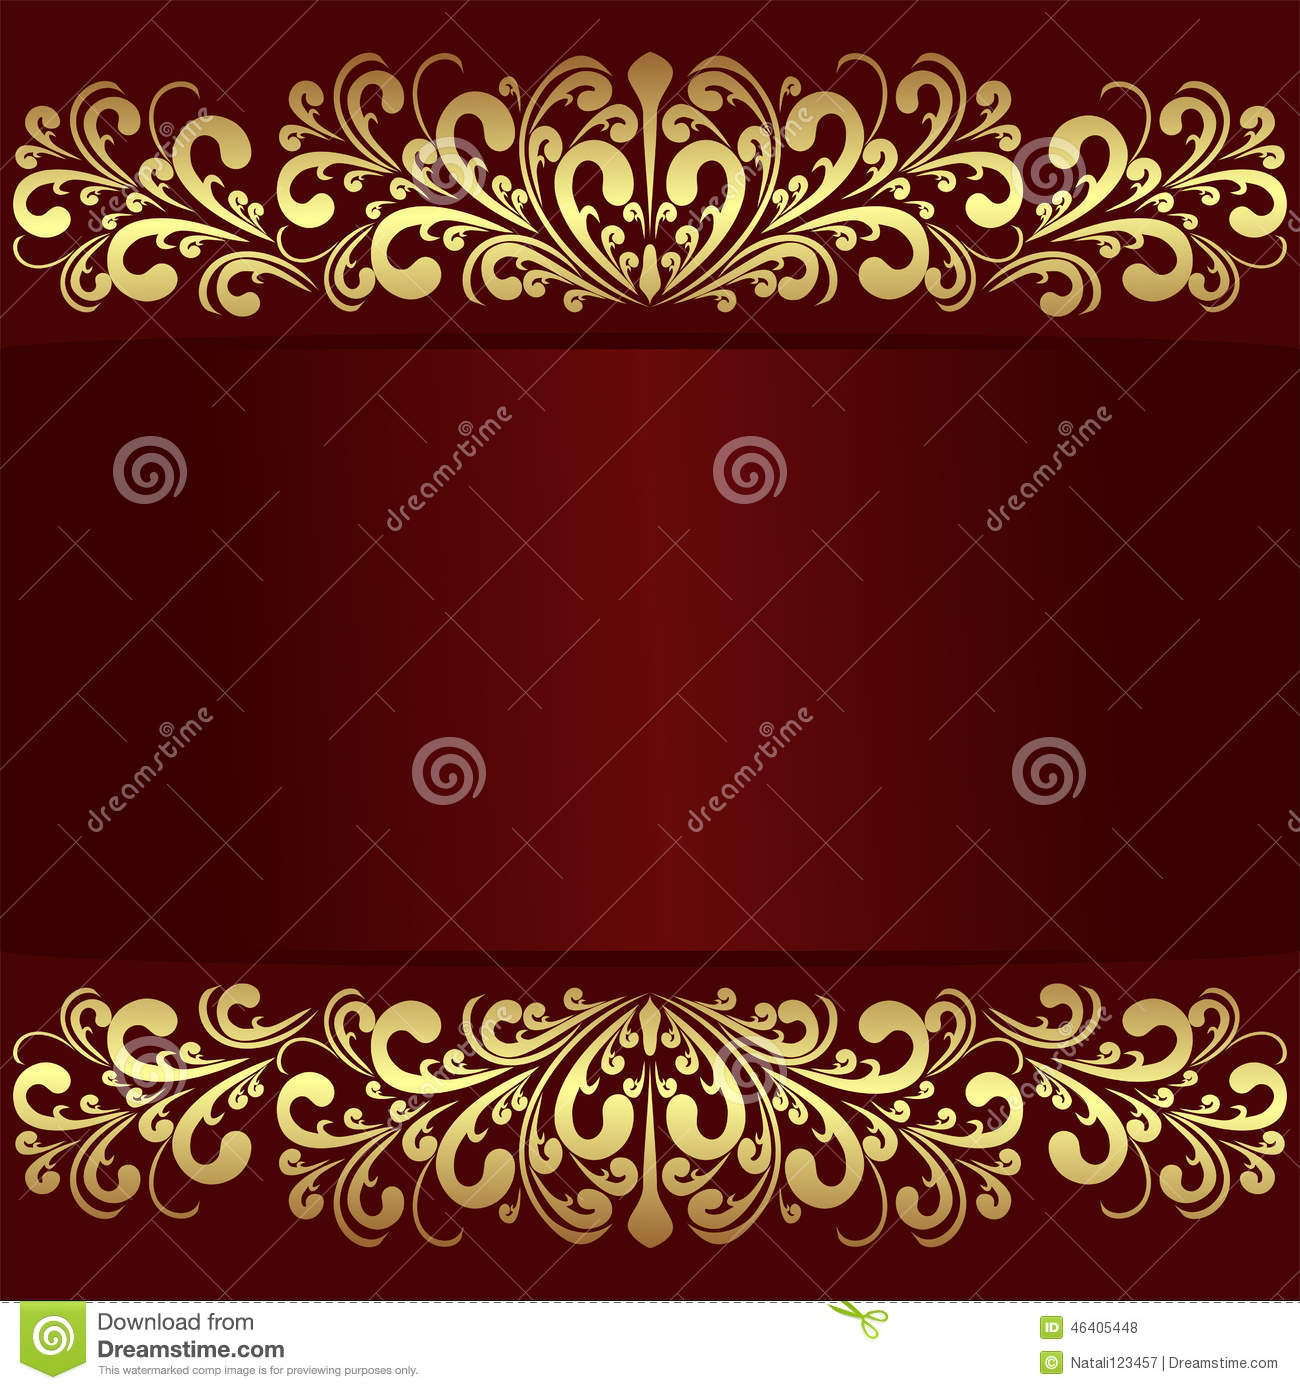 Royal Border Oriental Rug By Rug Culture: Luxury Red Background With Golden Royal Borders. Stock